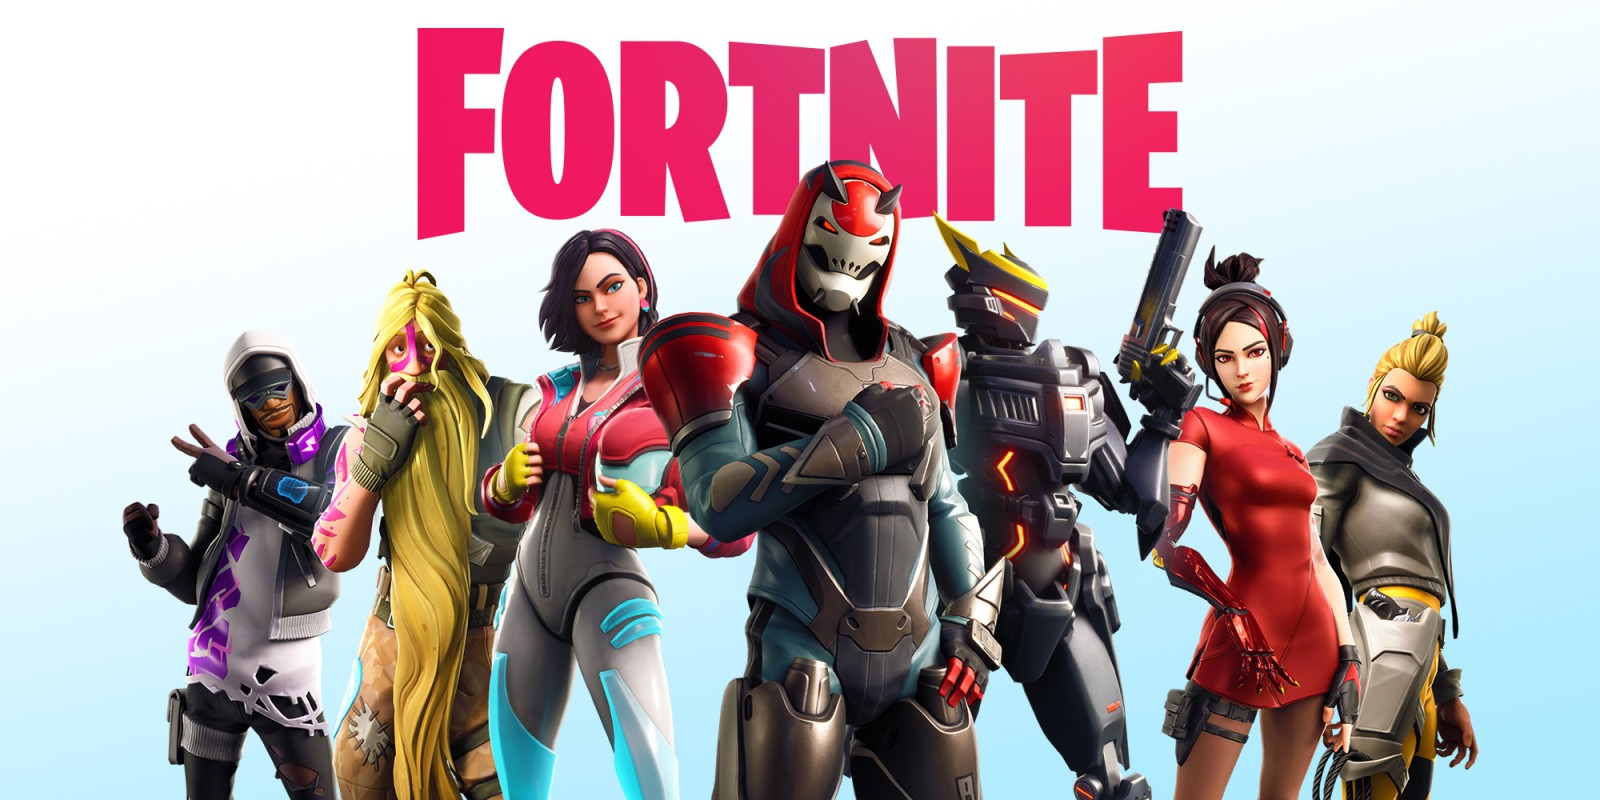 Fortnite A Game Played By Hundred Millions Sada El Balad